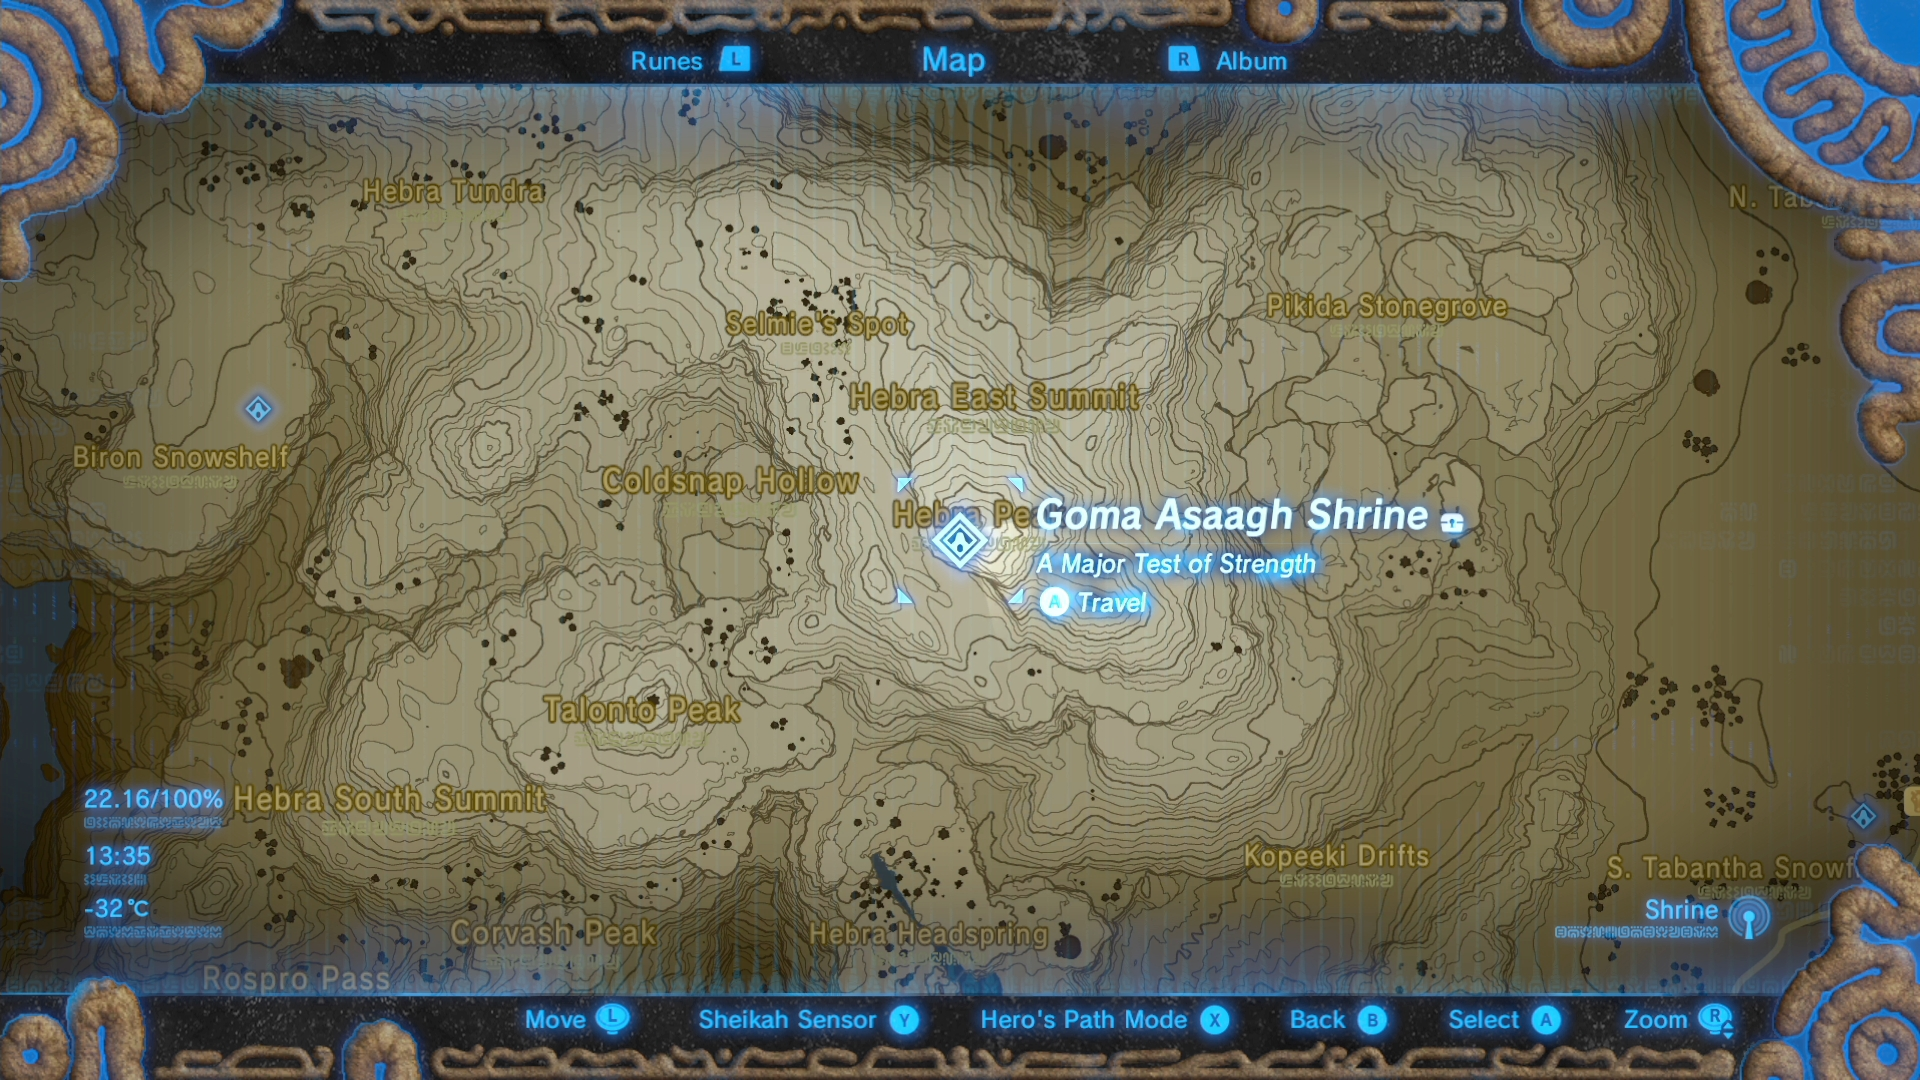 Zelda: Breath of the Wild Xenoblade 2 quest guide: find the shooting on